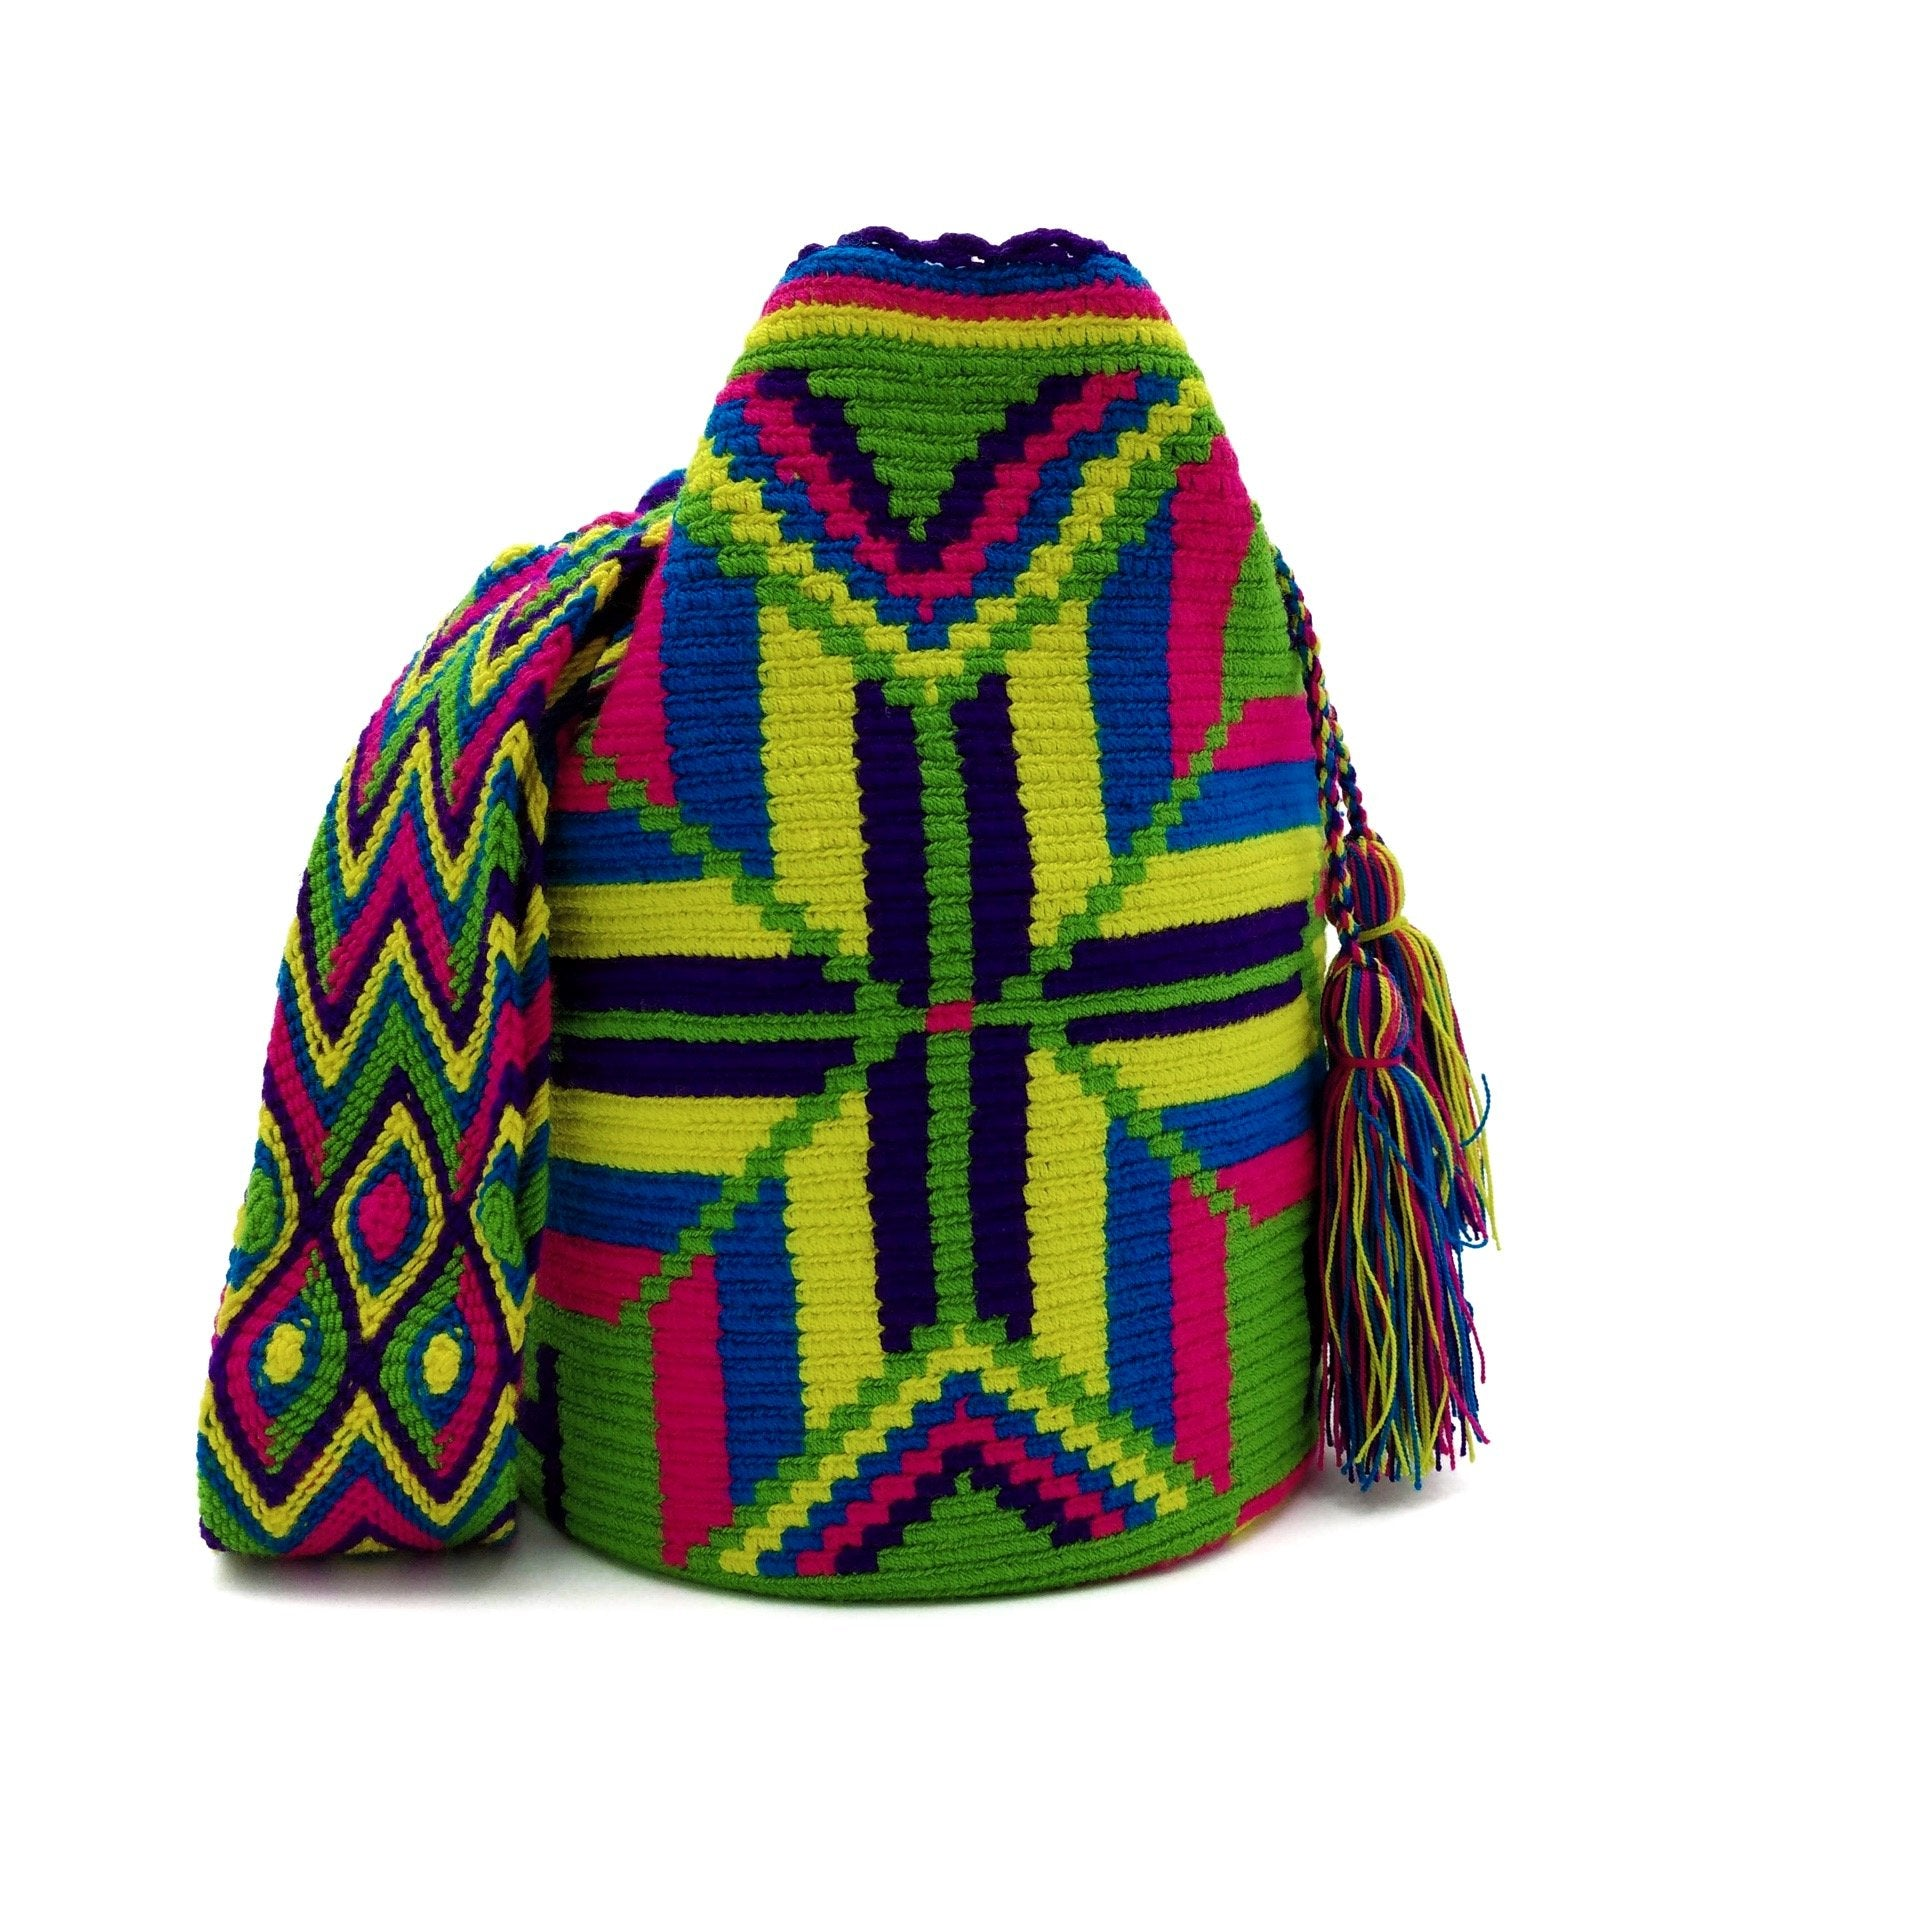 Front view of Green Macaw Wayuu Mochila Bag with a beautiful arrays of the following vibrant colors: Light-Green, Cerulean (Dark-Aquamarine), Bright-Rose, Purple, and Yellow.